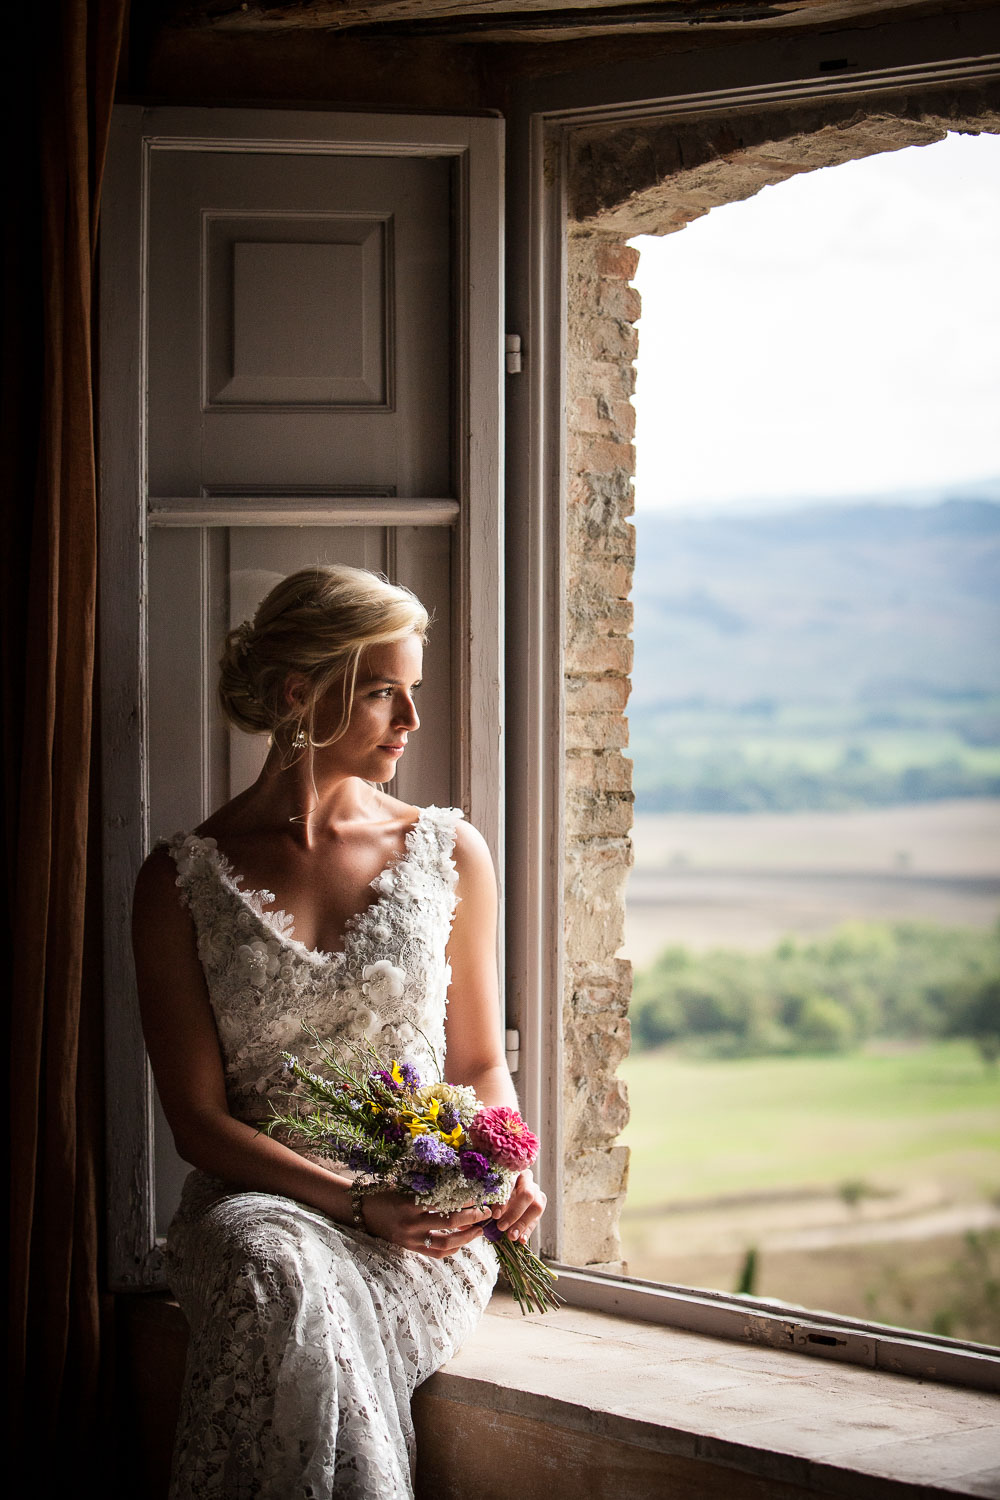 Wedding photo of a bride in a window in Tuscany